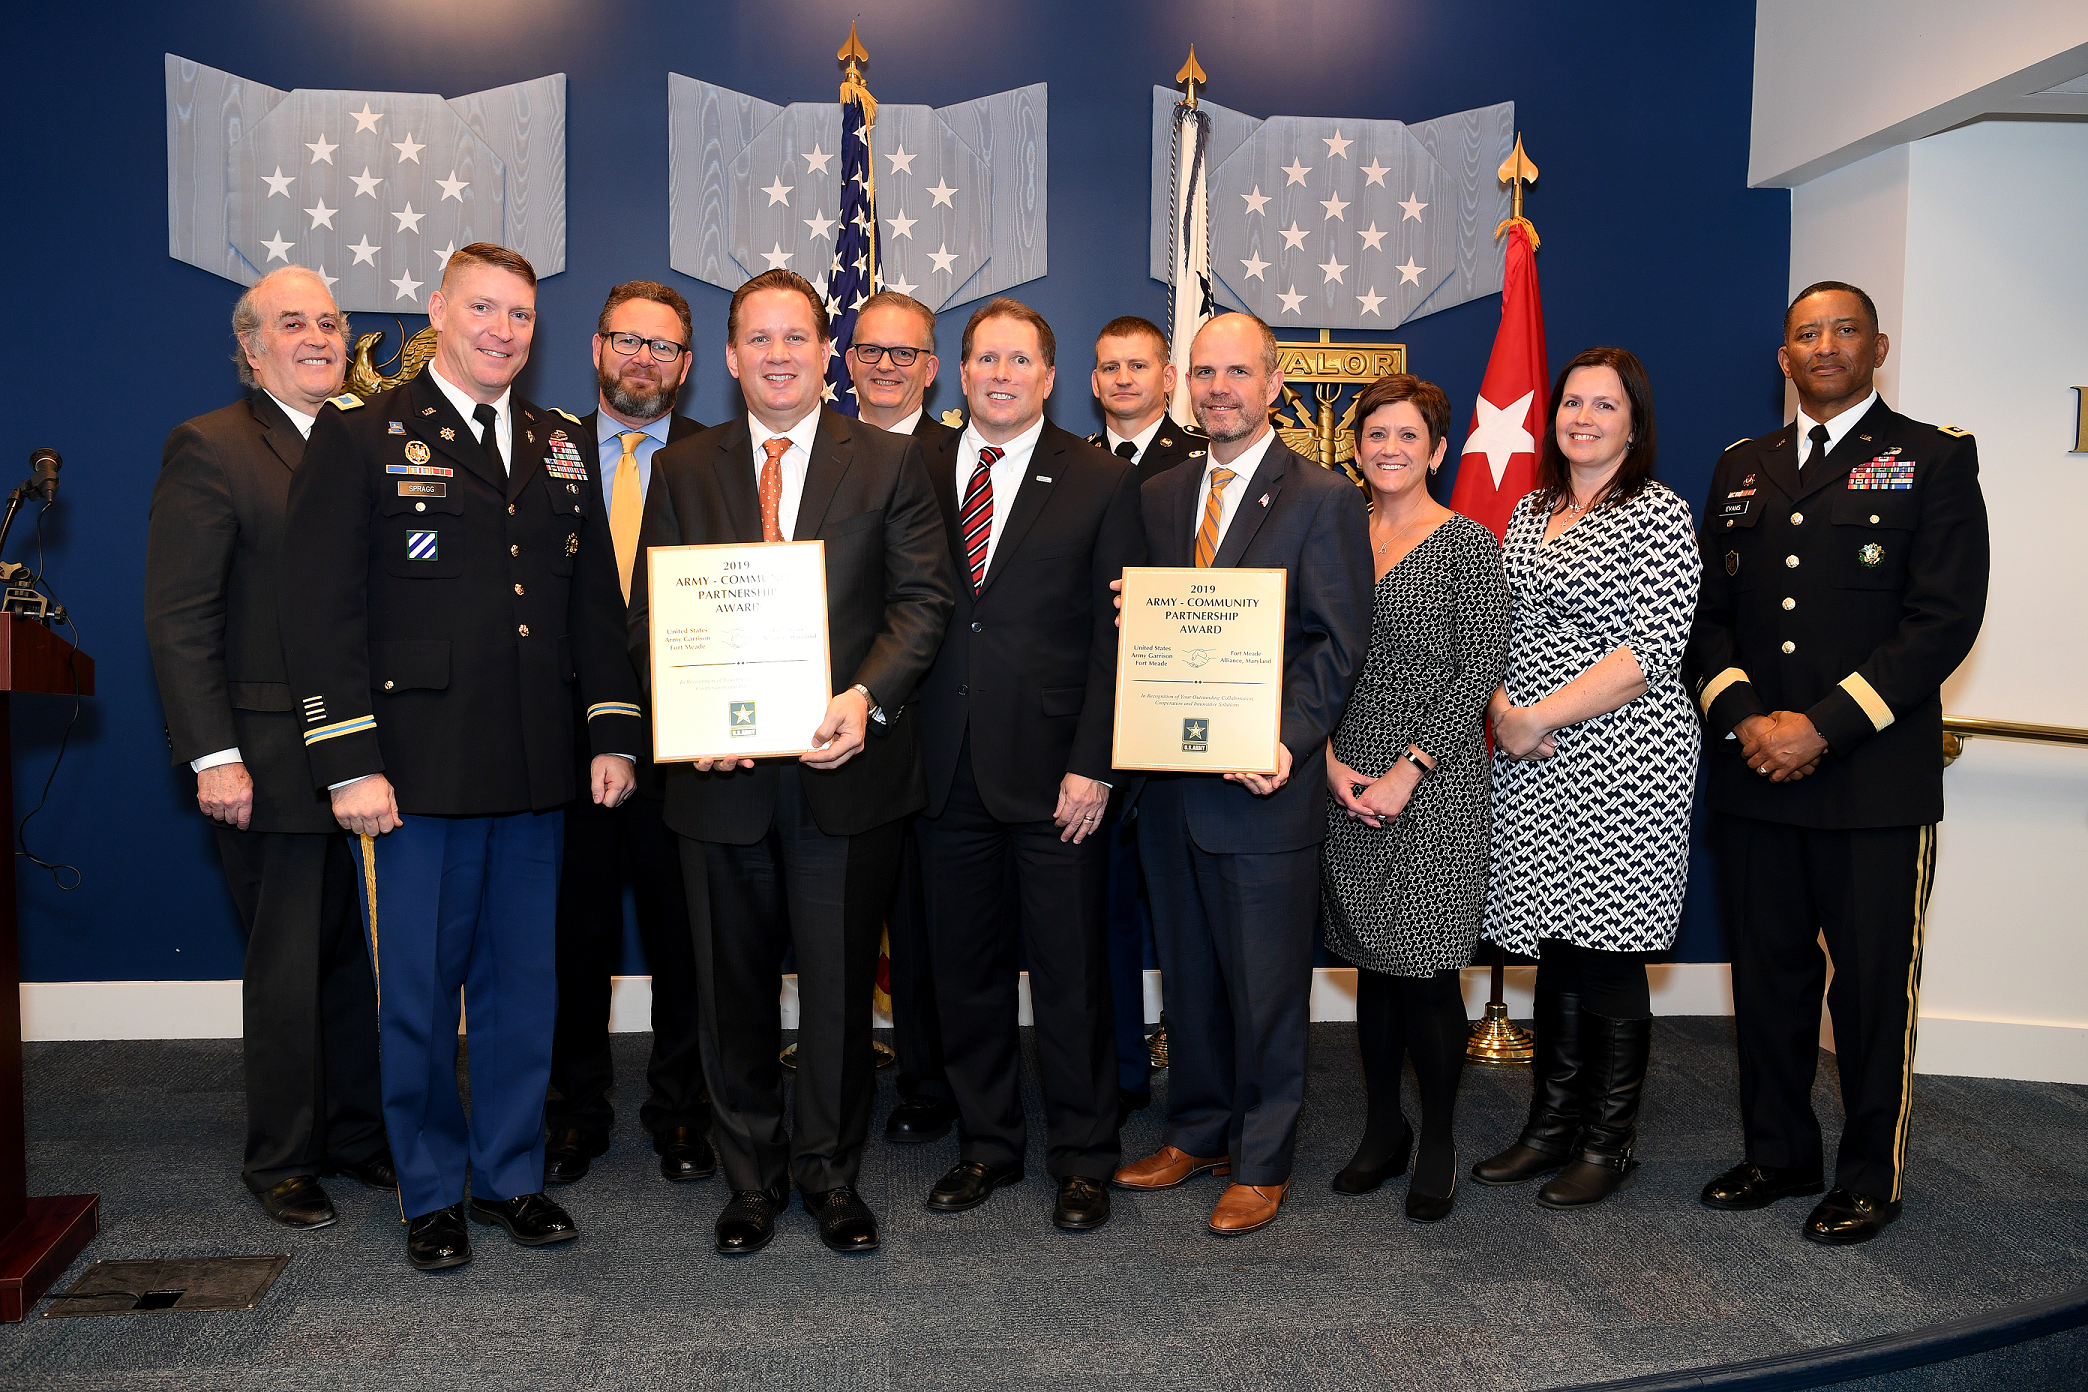 Army honors FGGM and FMA for its partnership